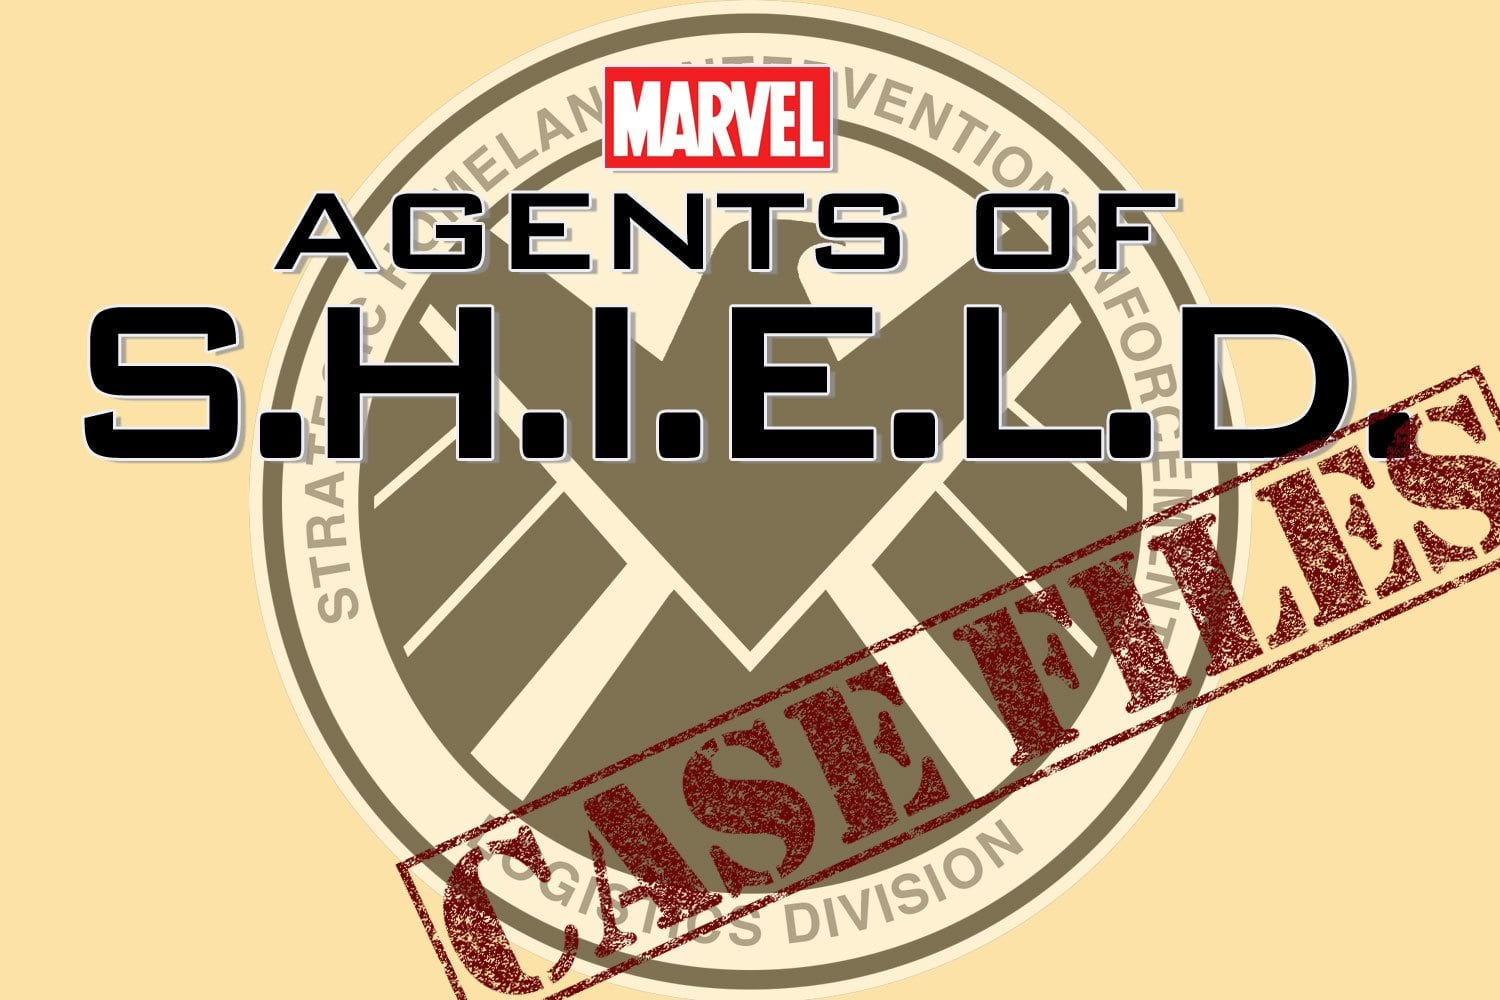 Agents of SHIELD: Case Files is a weekly podcast discussing the ABC TV series, Marvel's Agents of SHIELD ! Make sure you've got your security clearance!